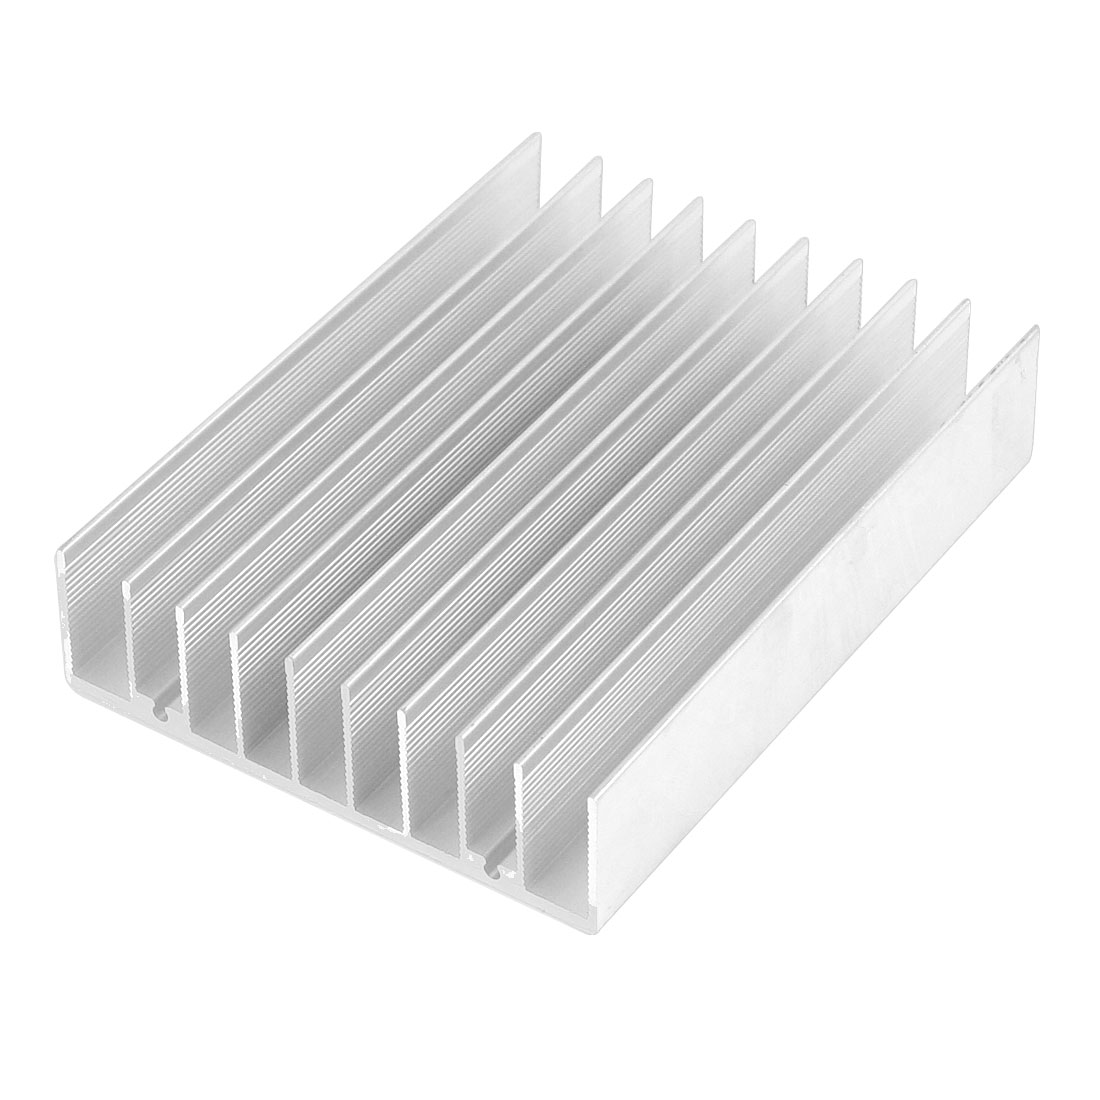 Silver White 100mmx75mmx22mm LED Heat Sink Aluminum Cooling Fin